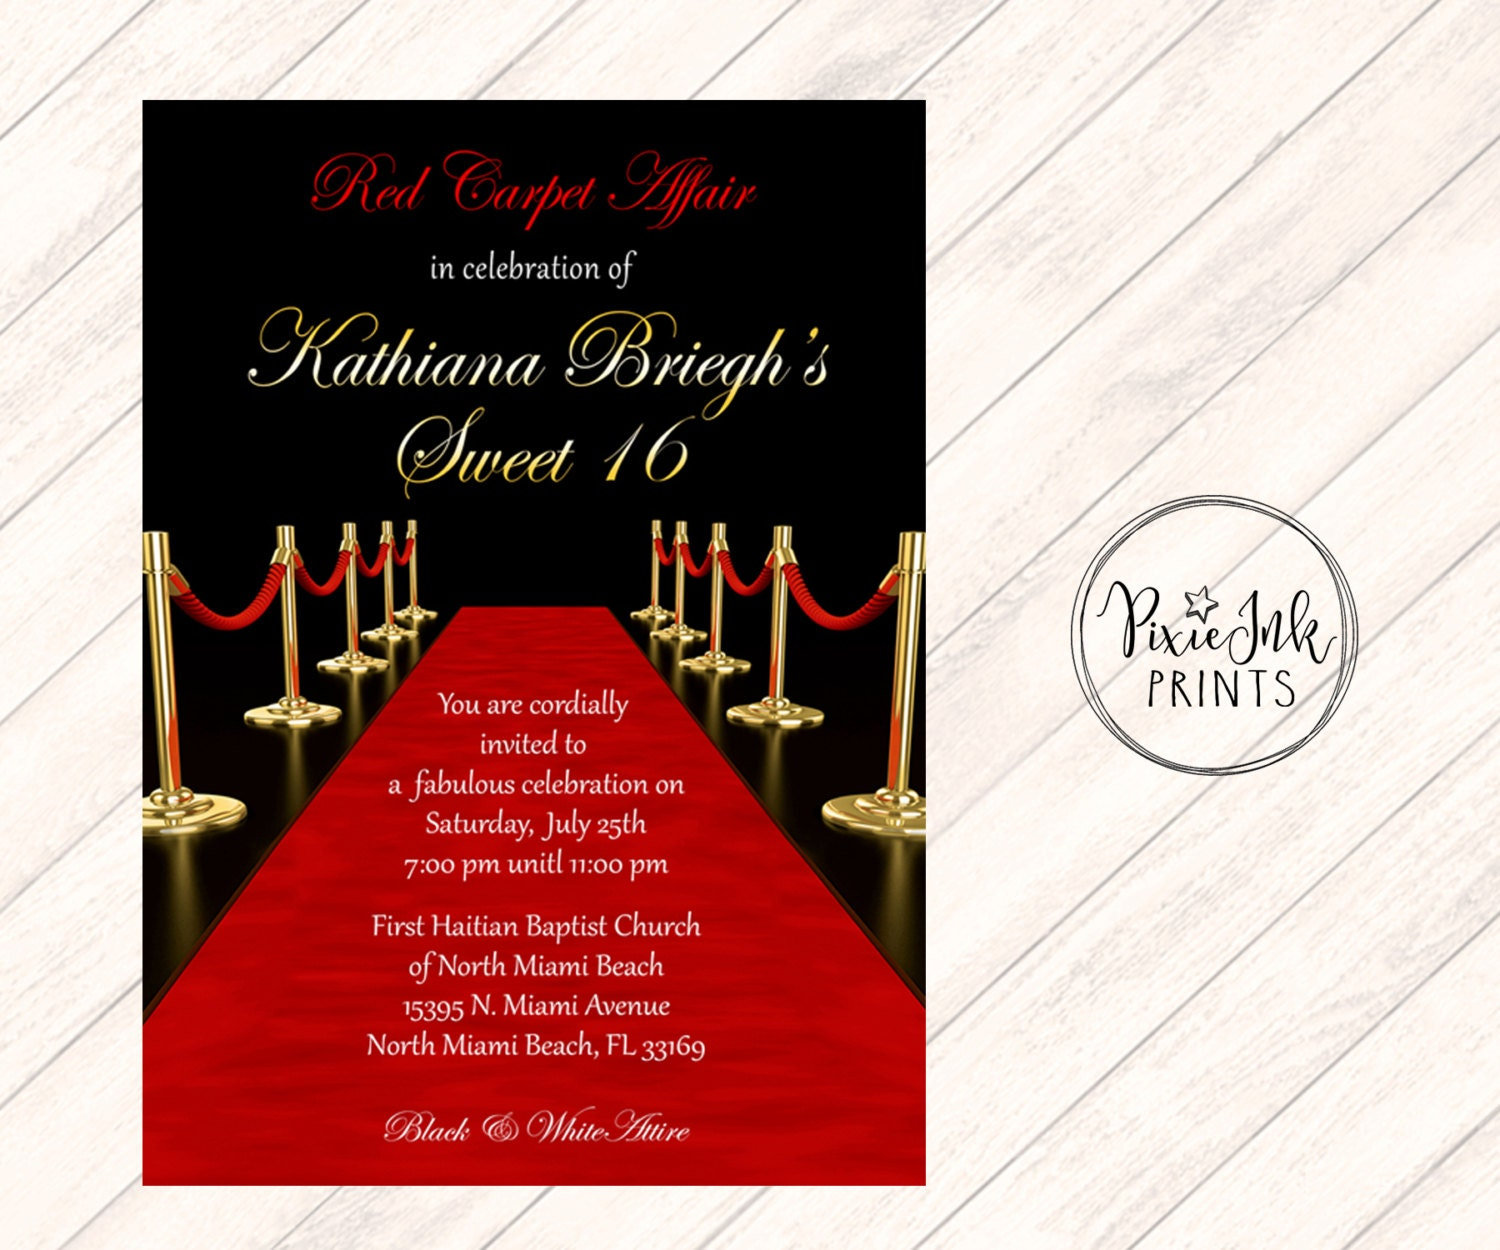 Red Carpet Affair Invitation Hollywood Sweet 16 Invite Red